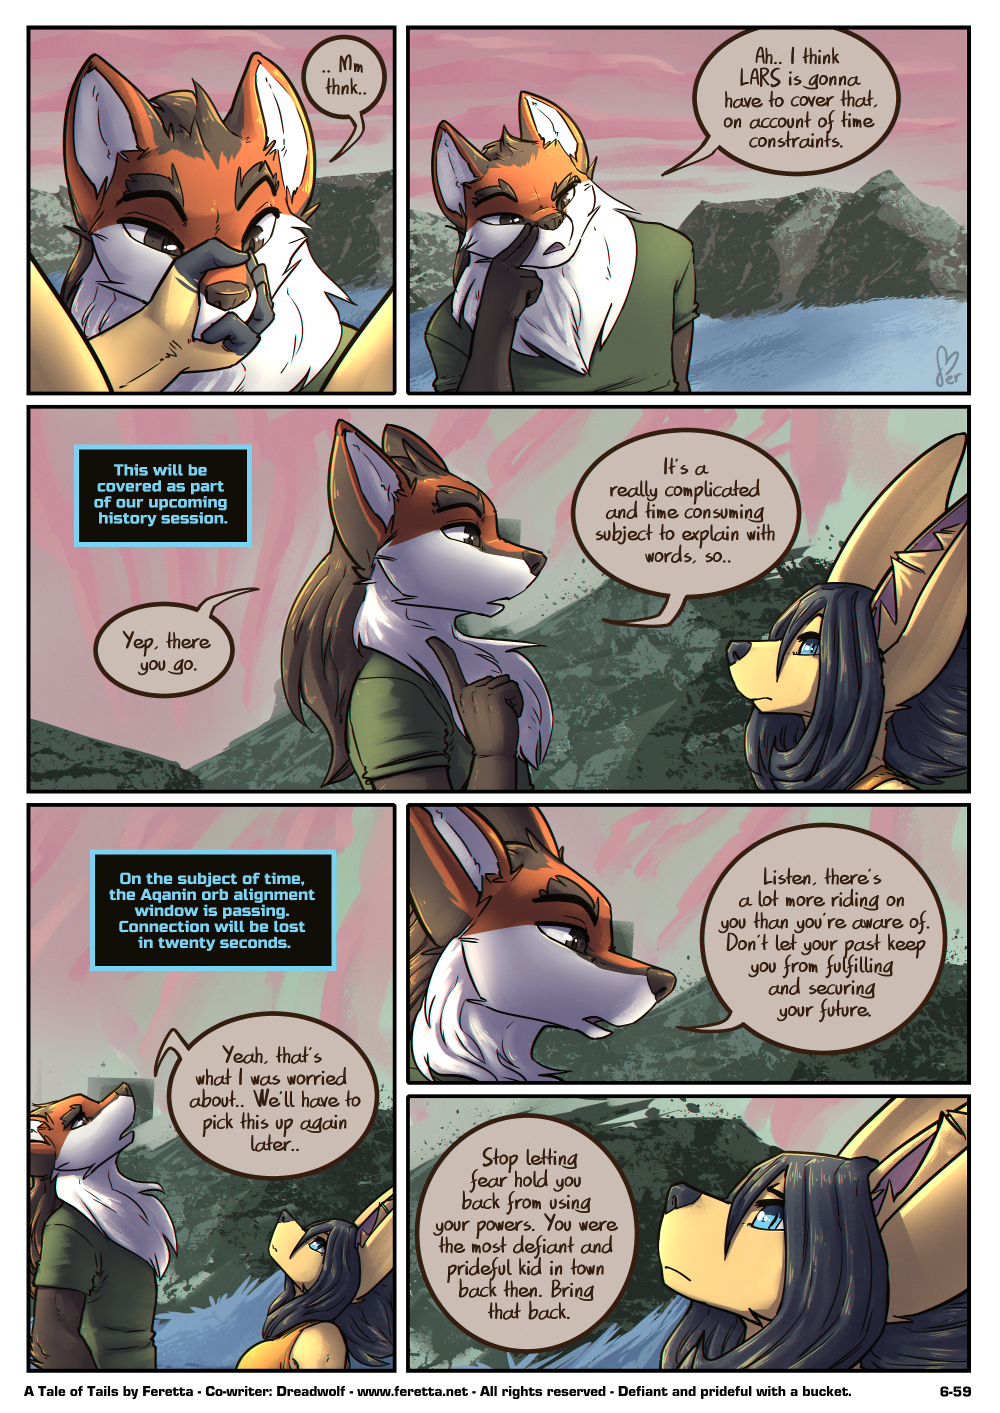 A Tale of Tails, 6-59